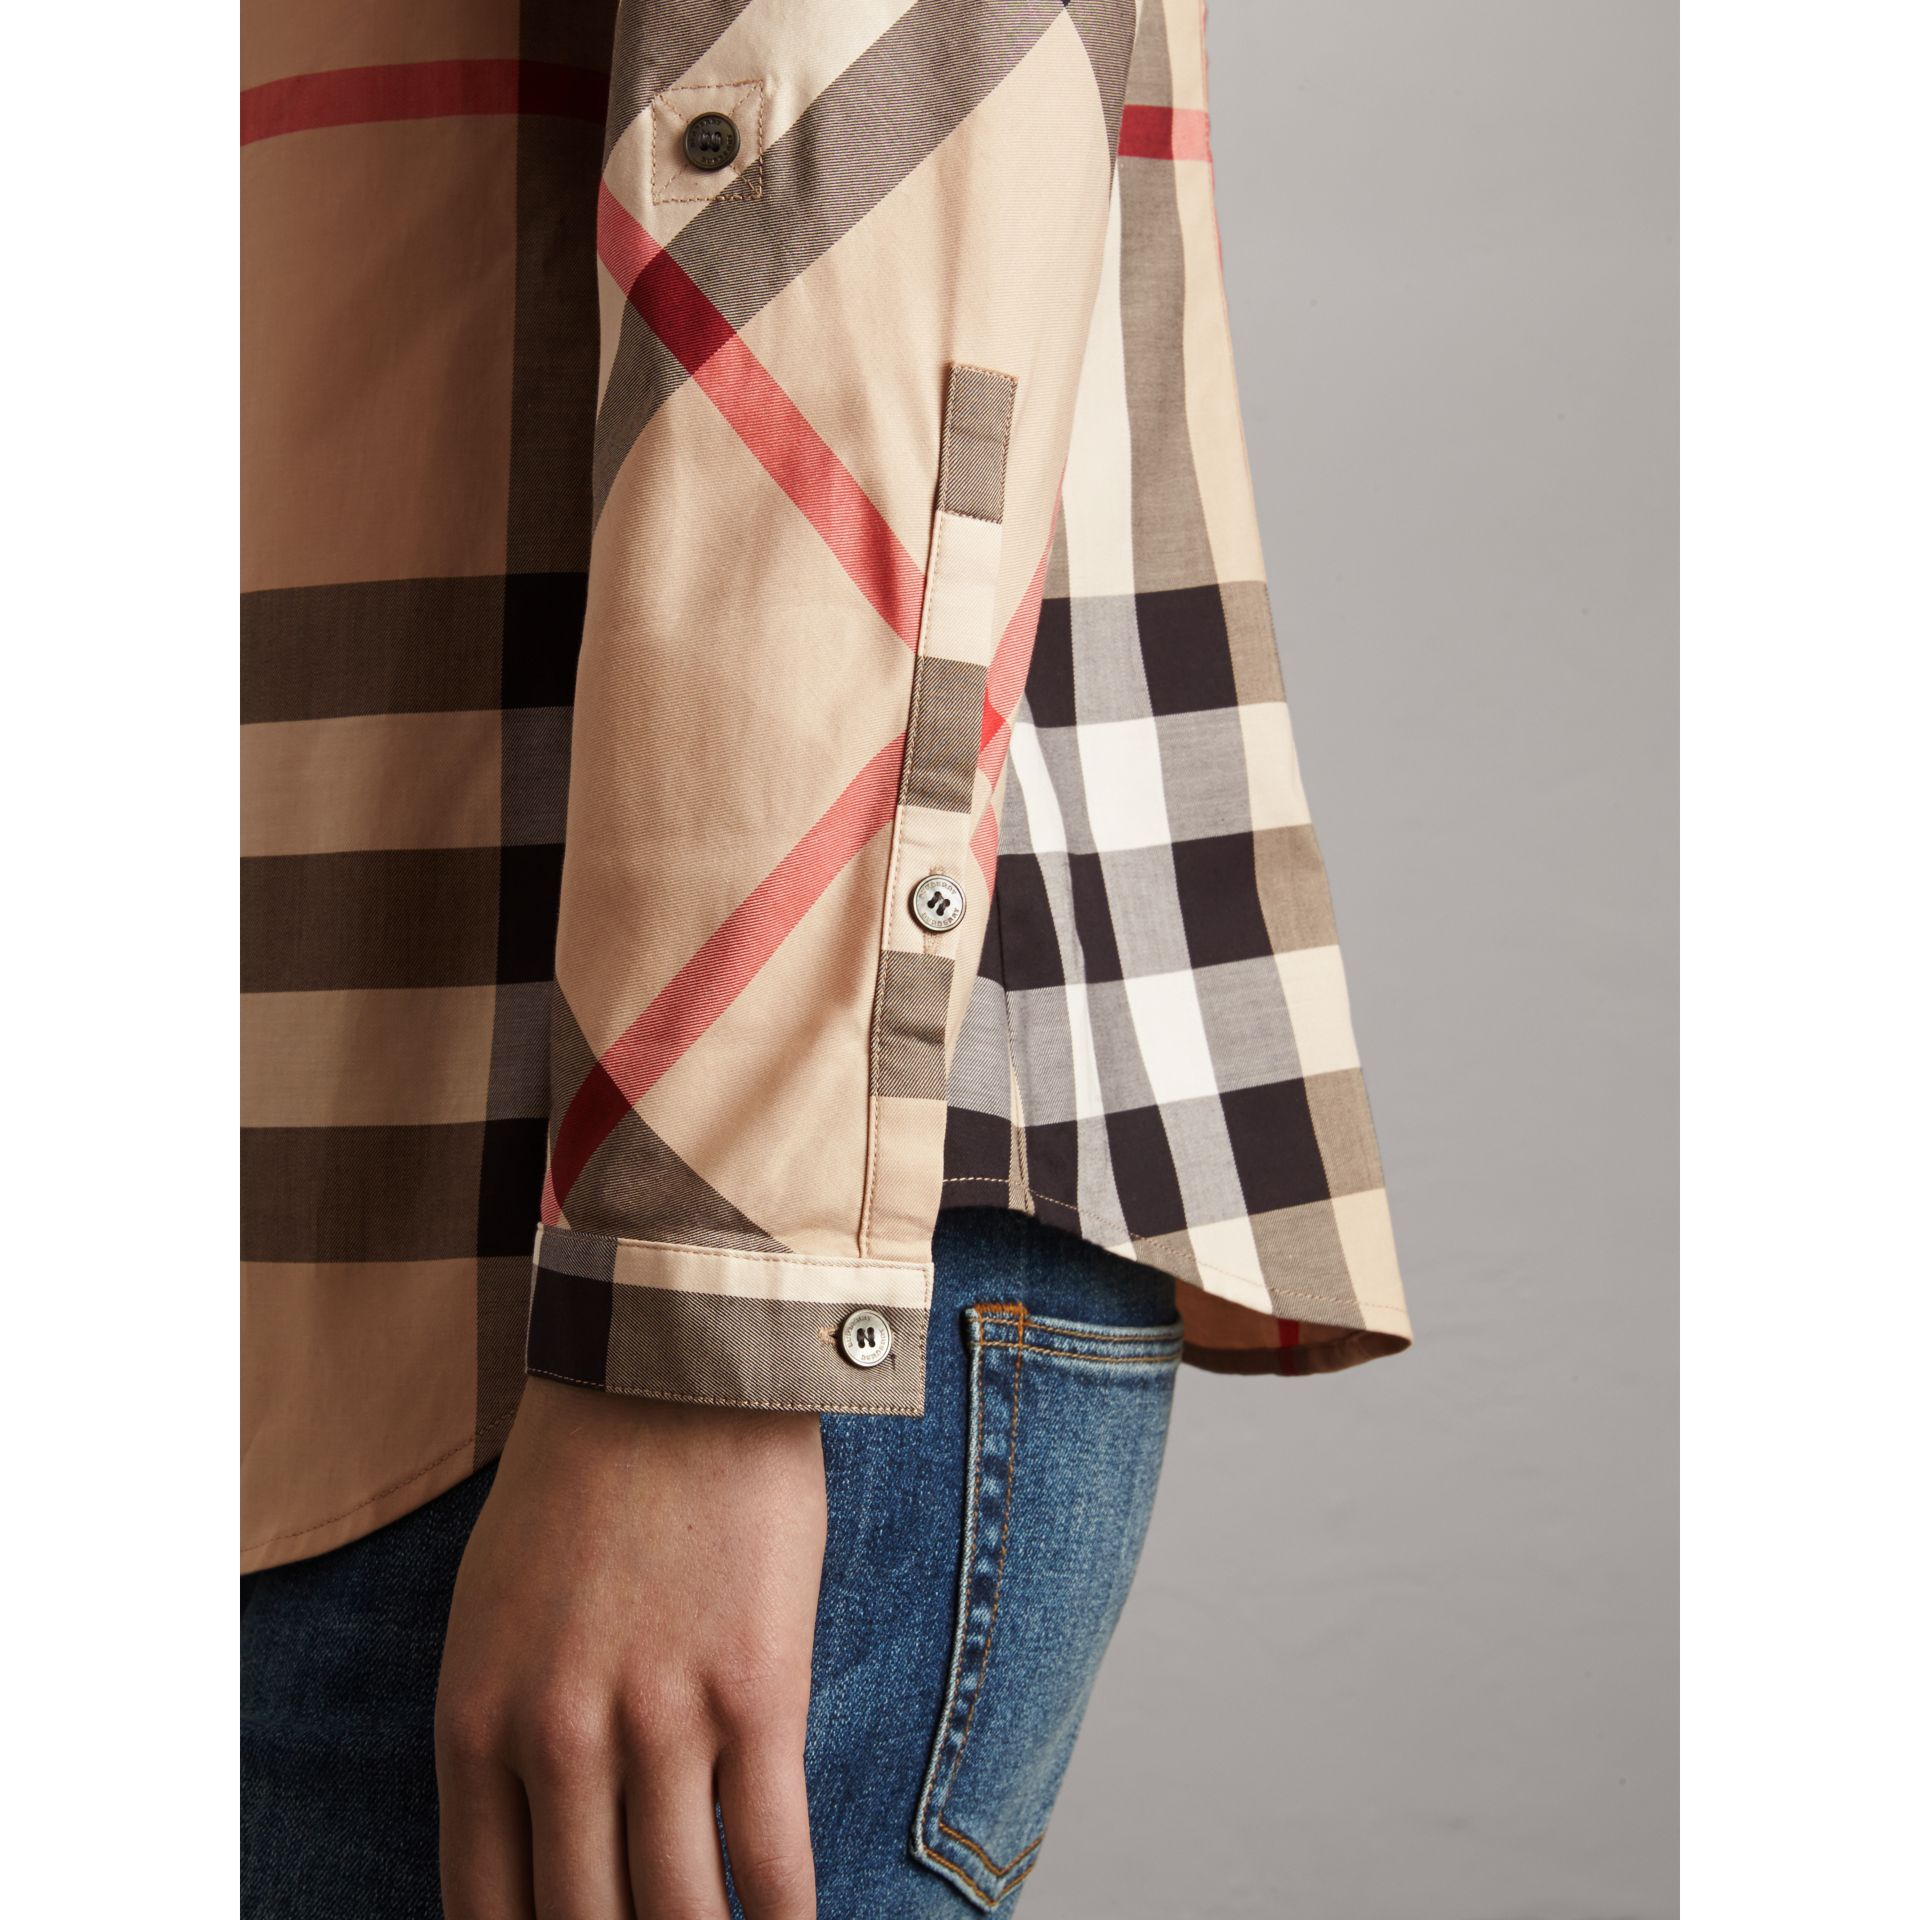 Bluse aus Stretchbaumwolle in Check (New Classic) - Damen | Burberry - Galerie-Bild 2